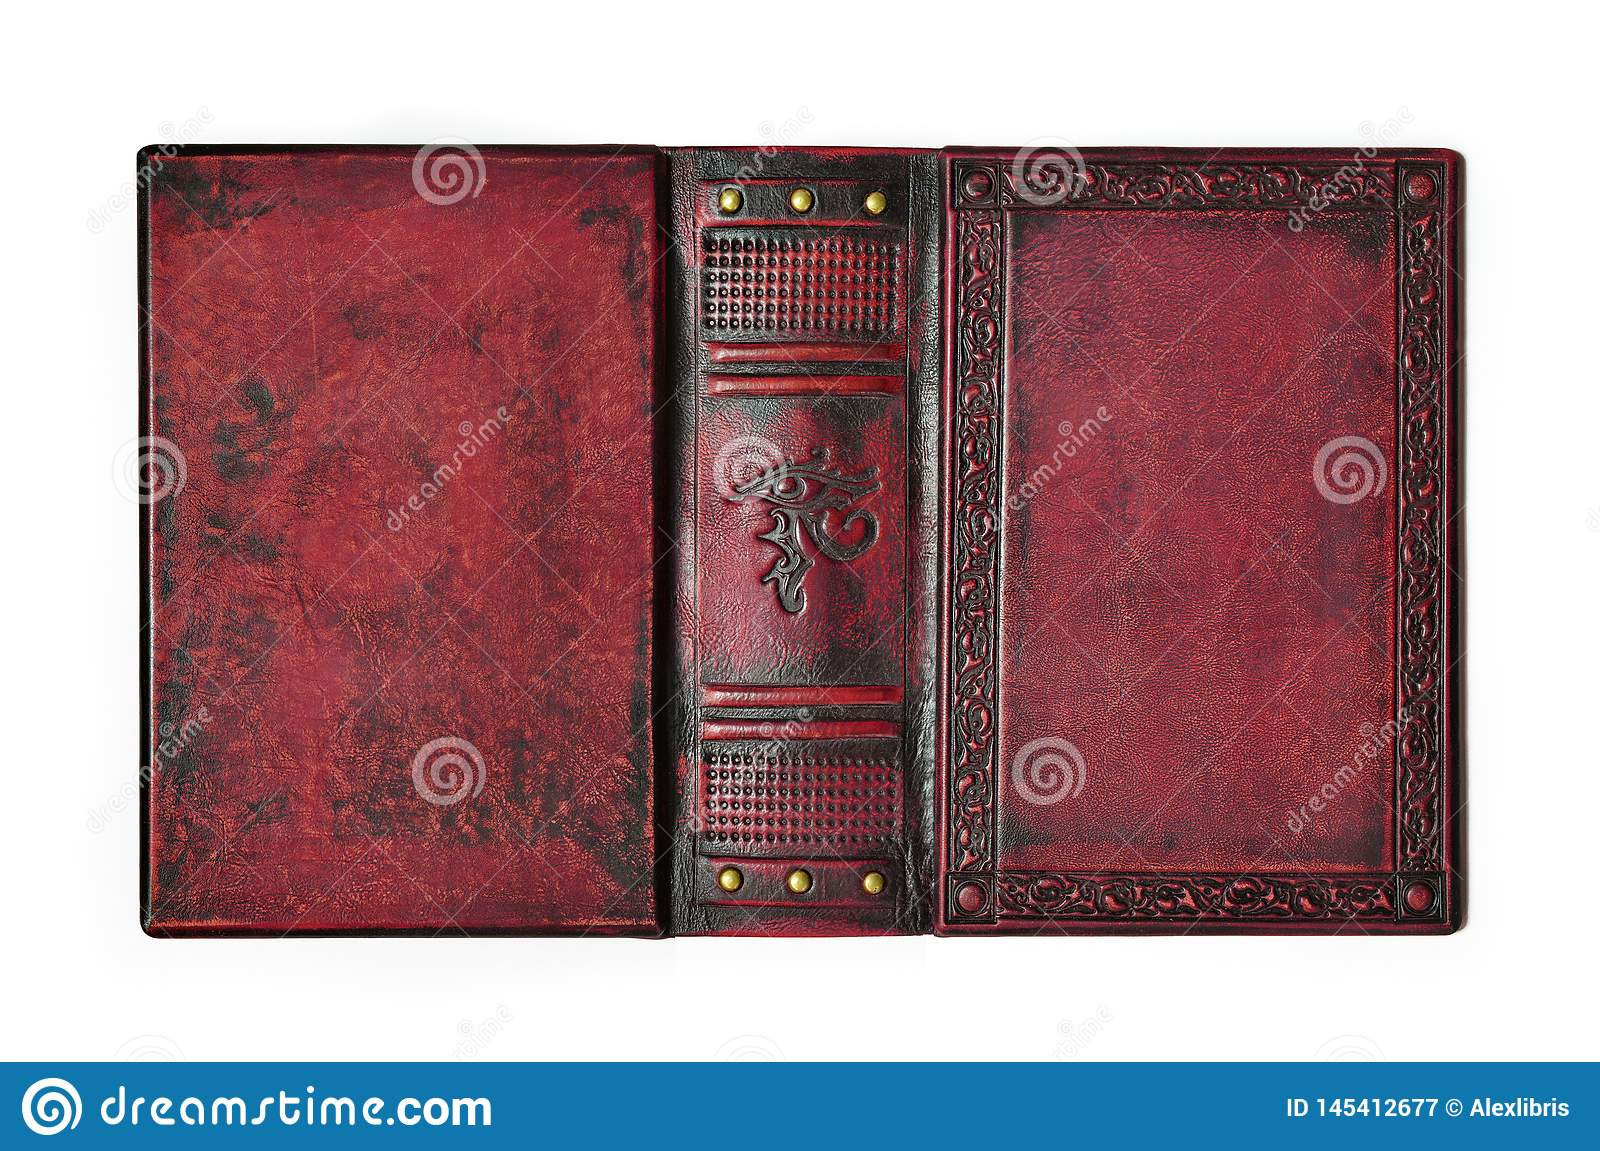 Aged red leather book cover with the embossed ancient Egyptian symbol `The Eye of Horus` lay down to the table opened